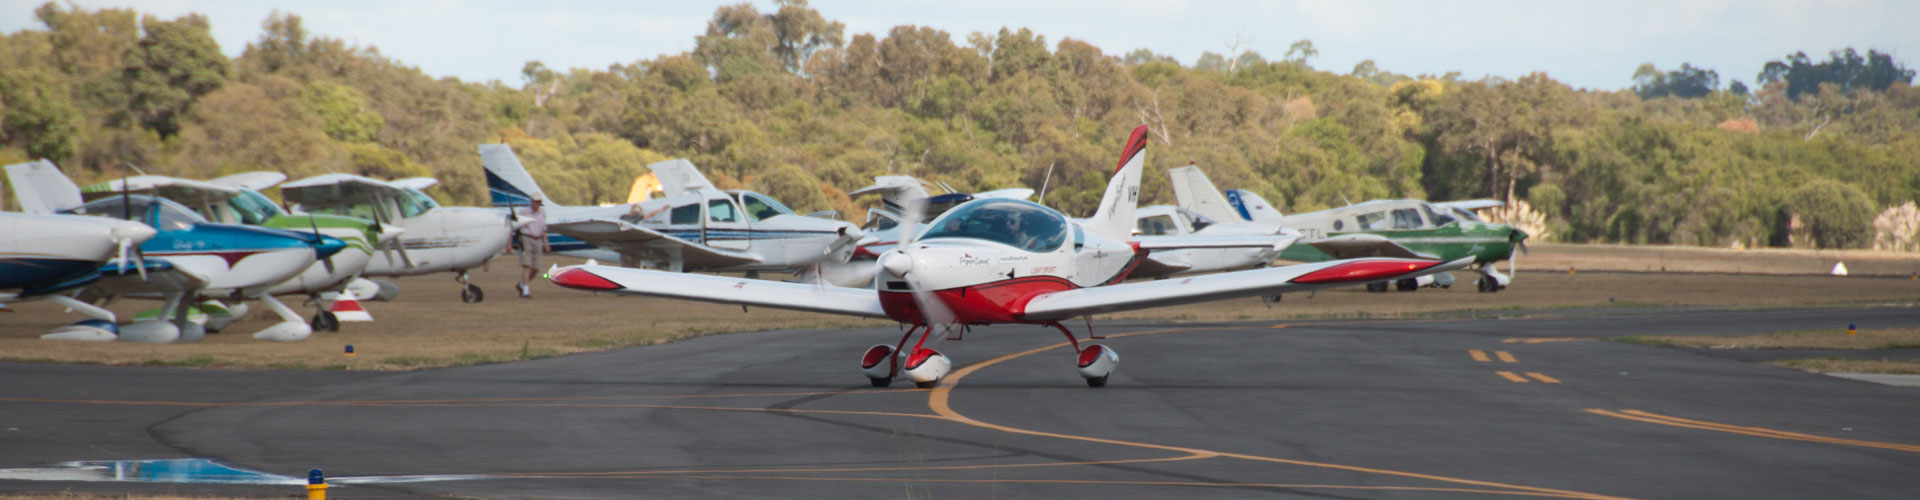 university-flying-club-jandakot-aircraft-hire-flight-training-modern-2